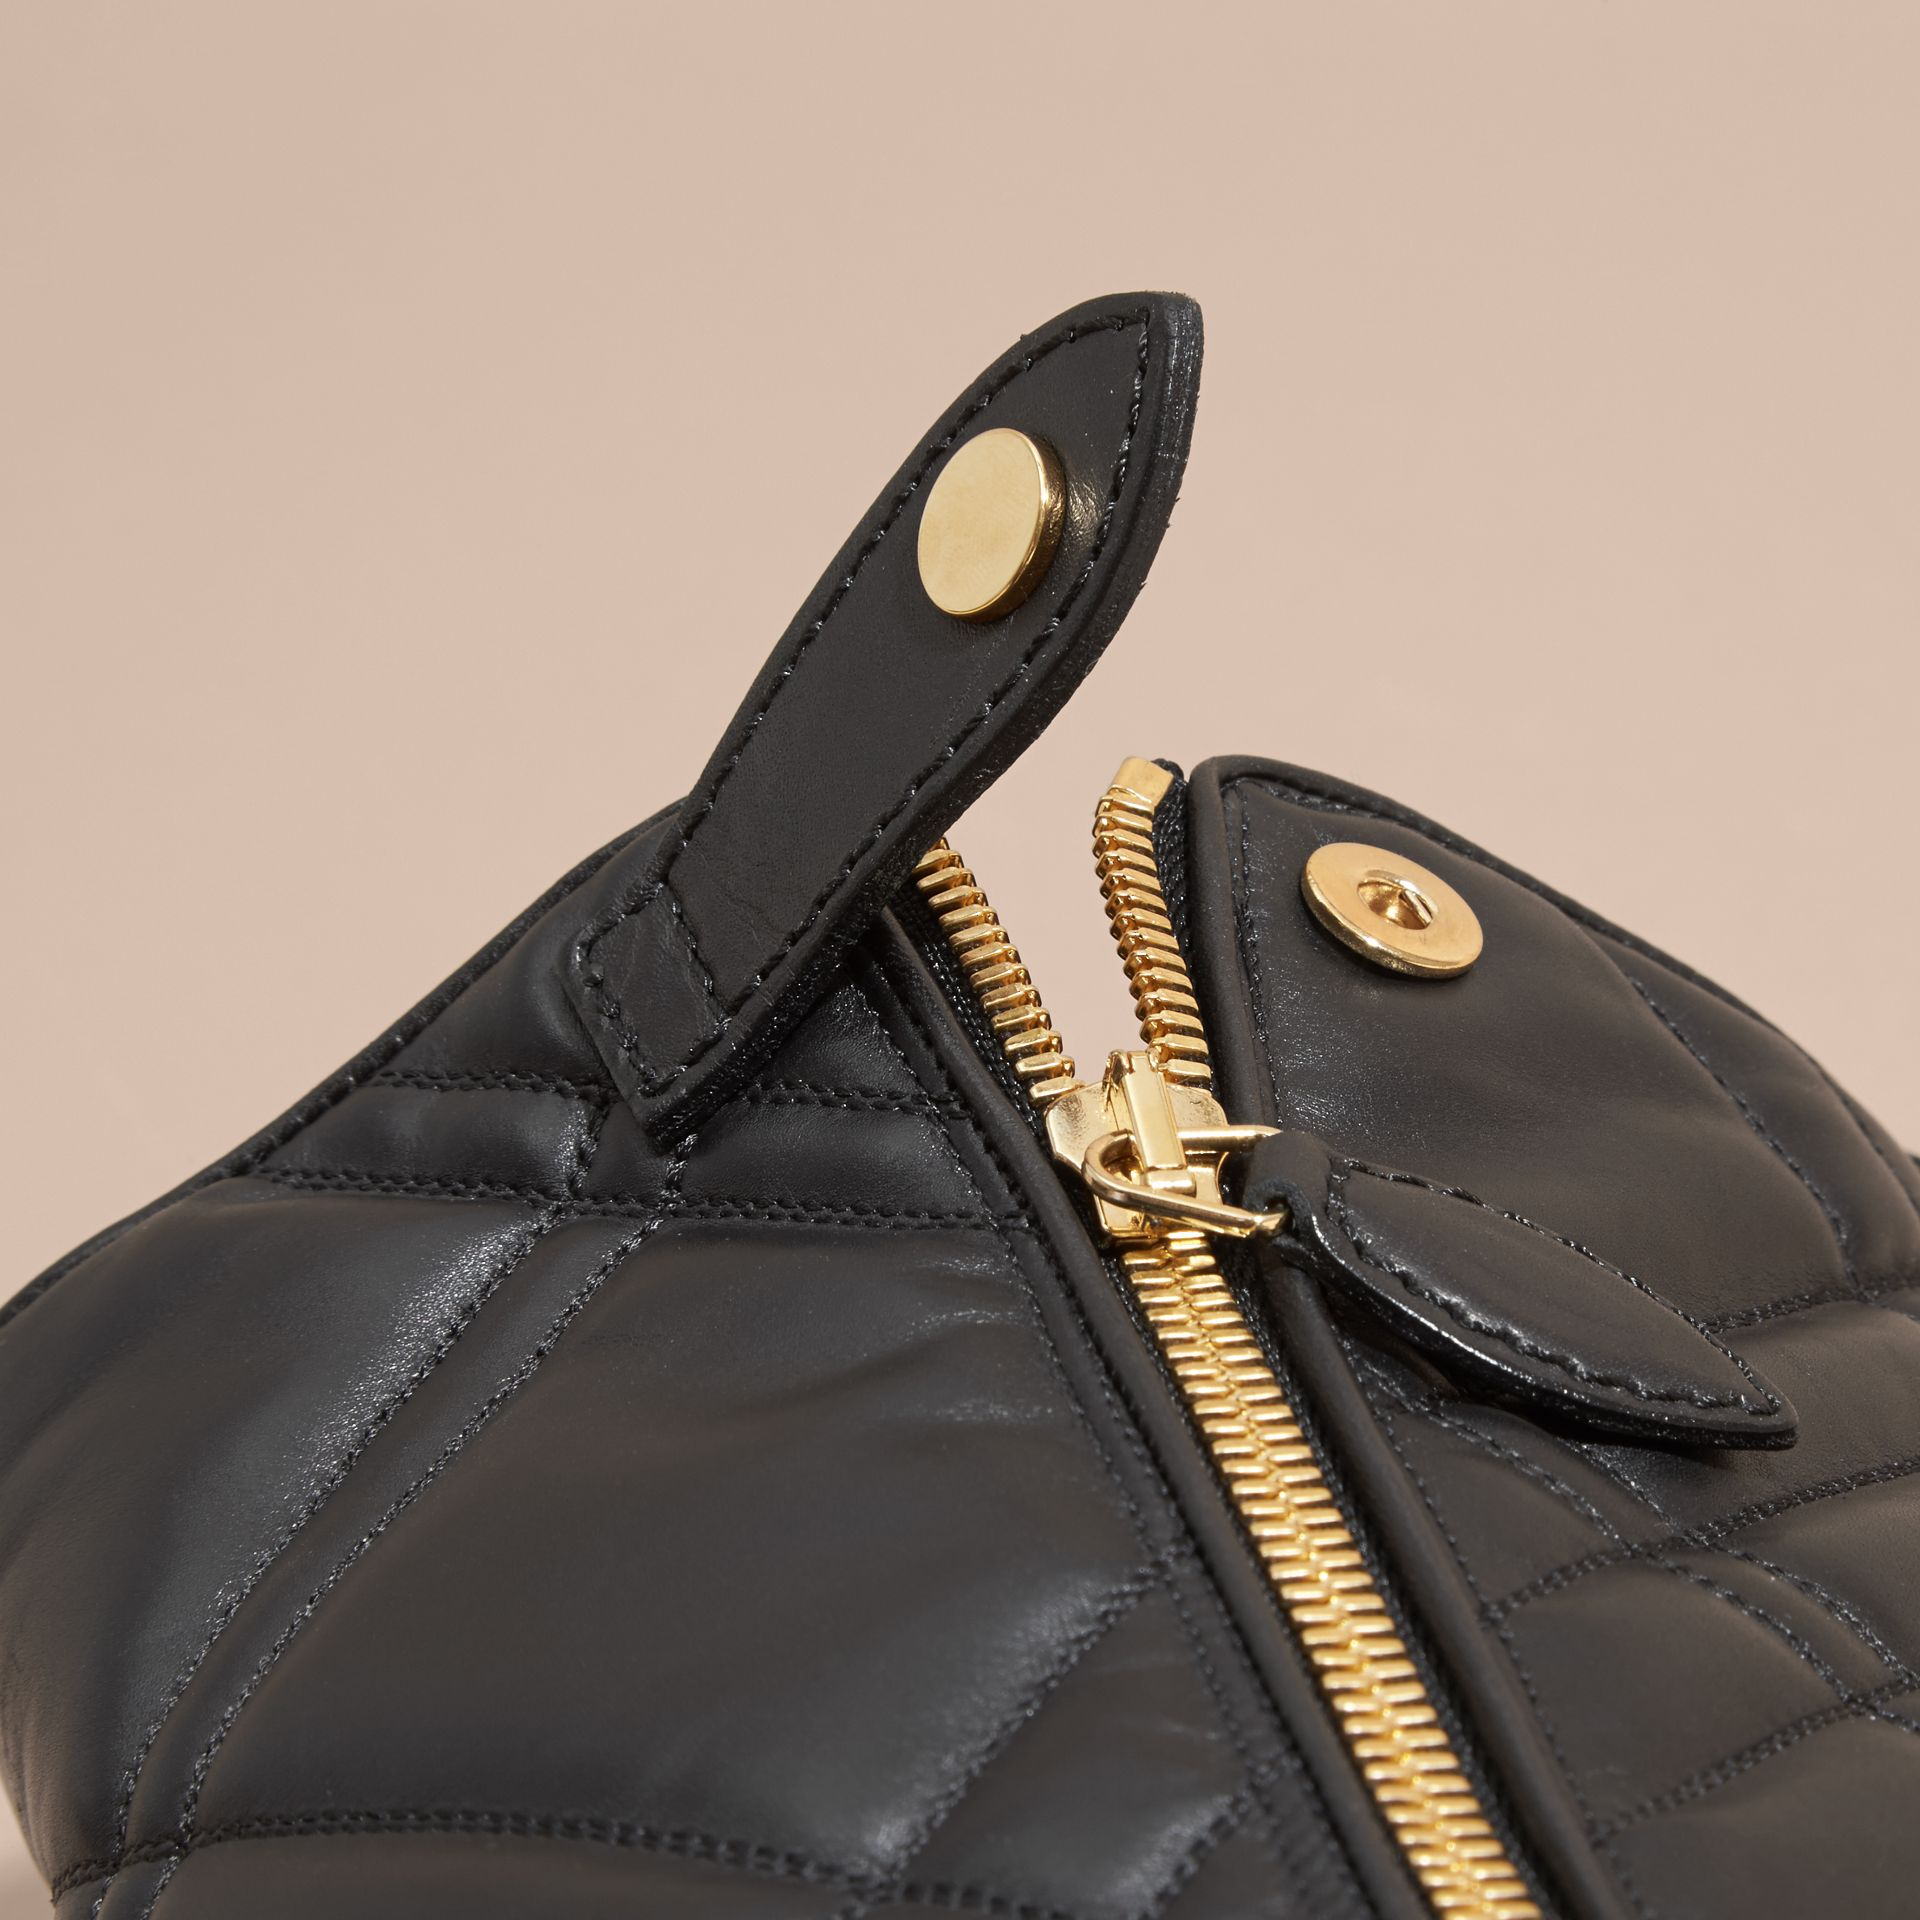 Buckle Detail Check Quilted Leather Boots - Women | Burberry Australia - gallery image 2